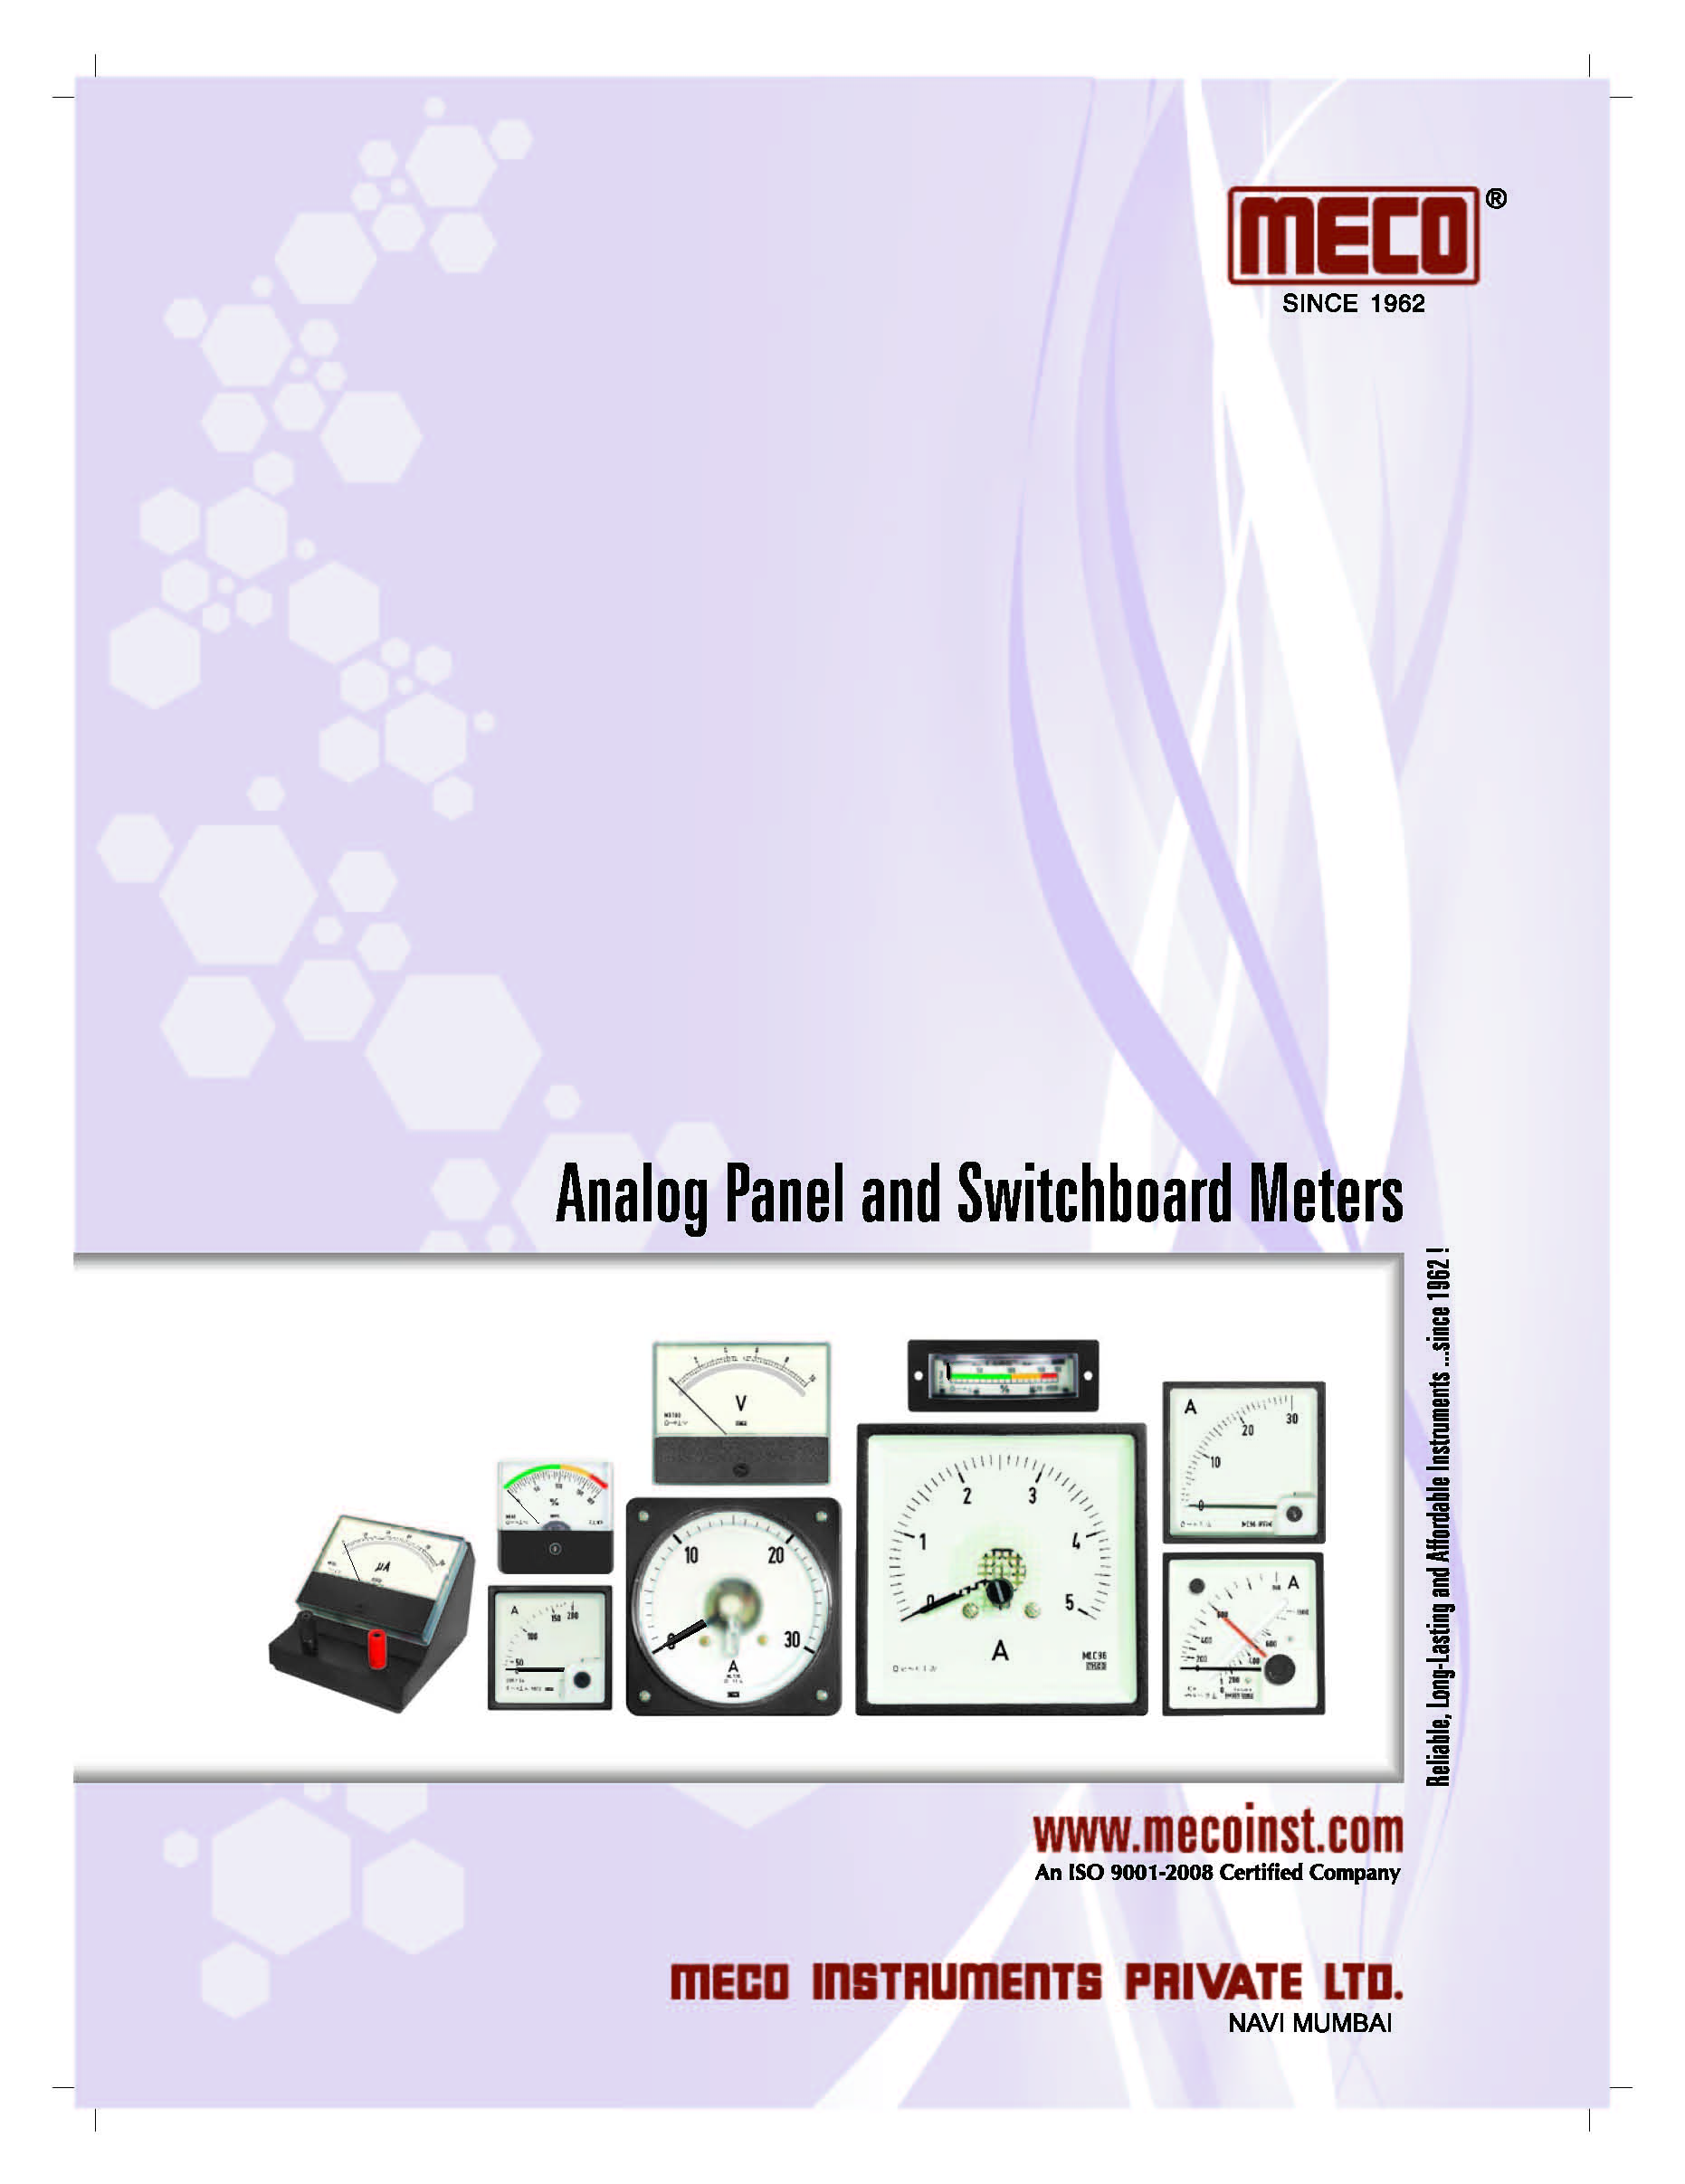 Analog Panel and Switchboard Meters - Introduction